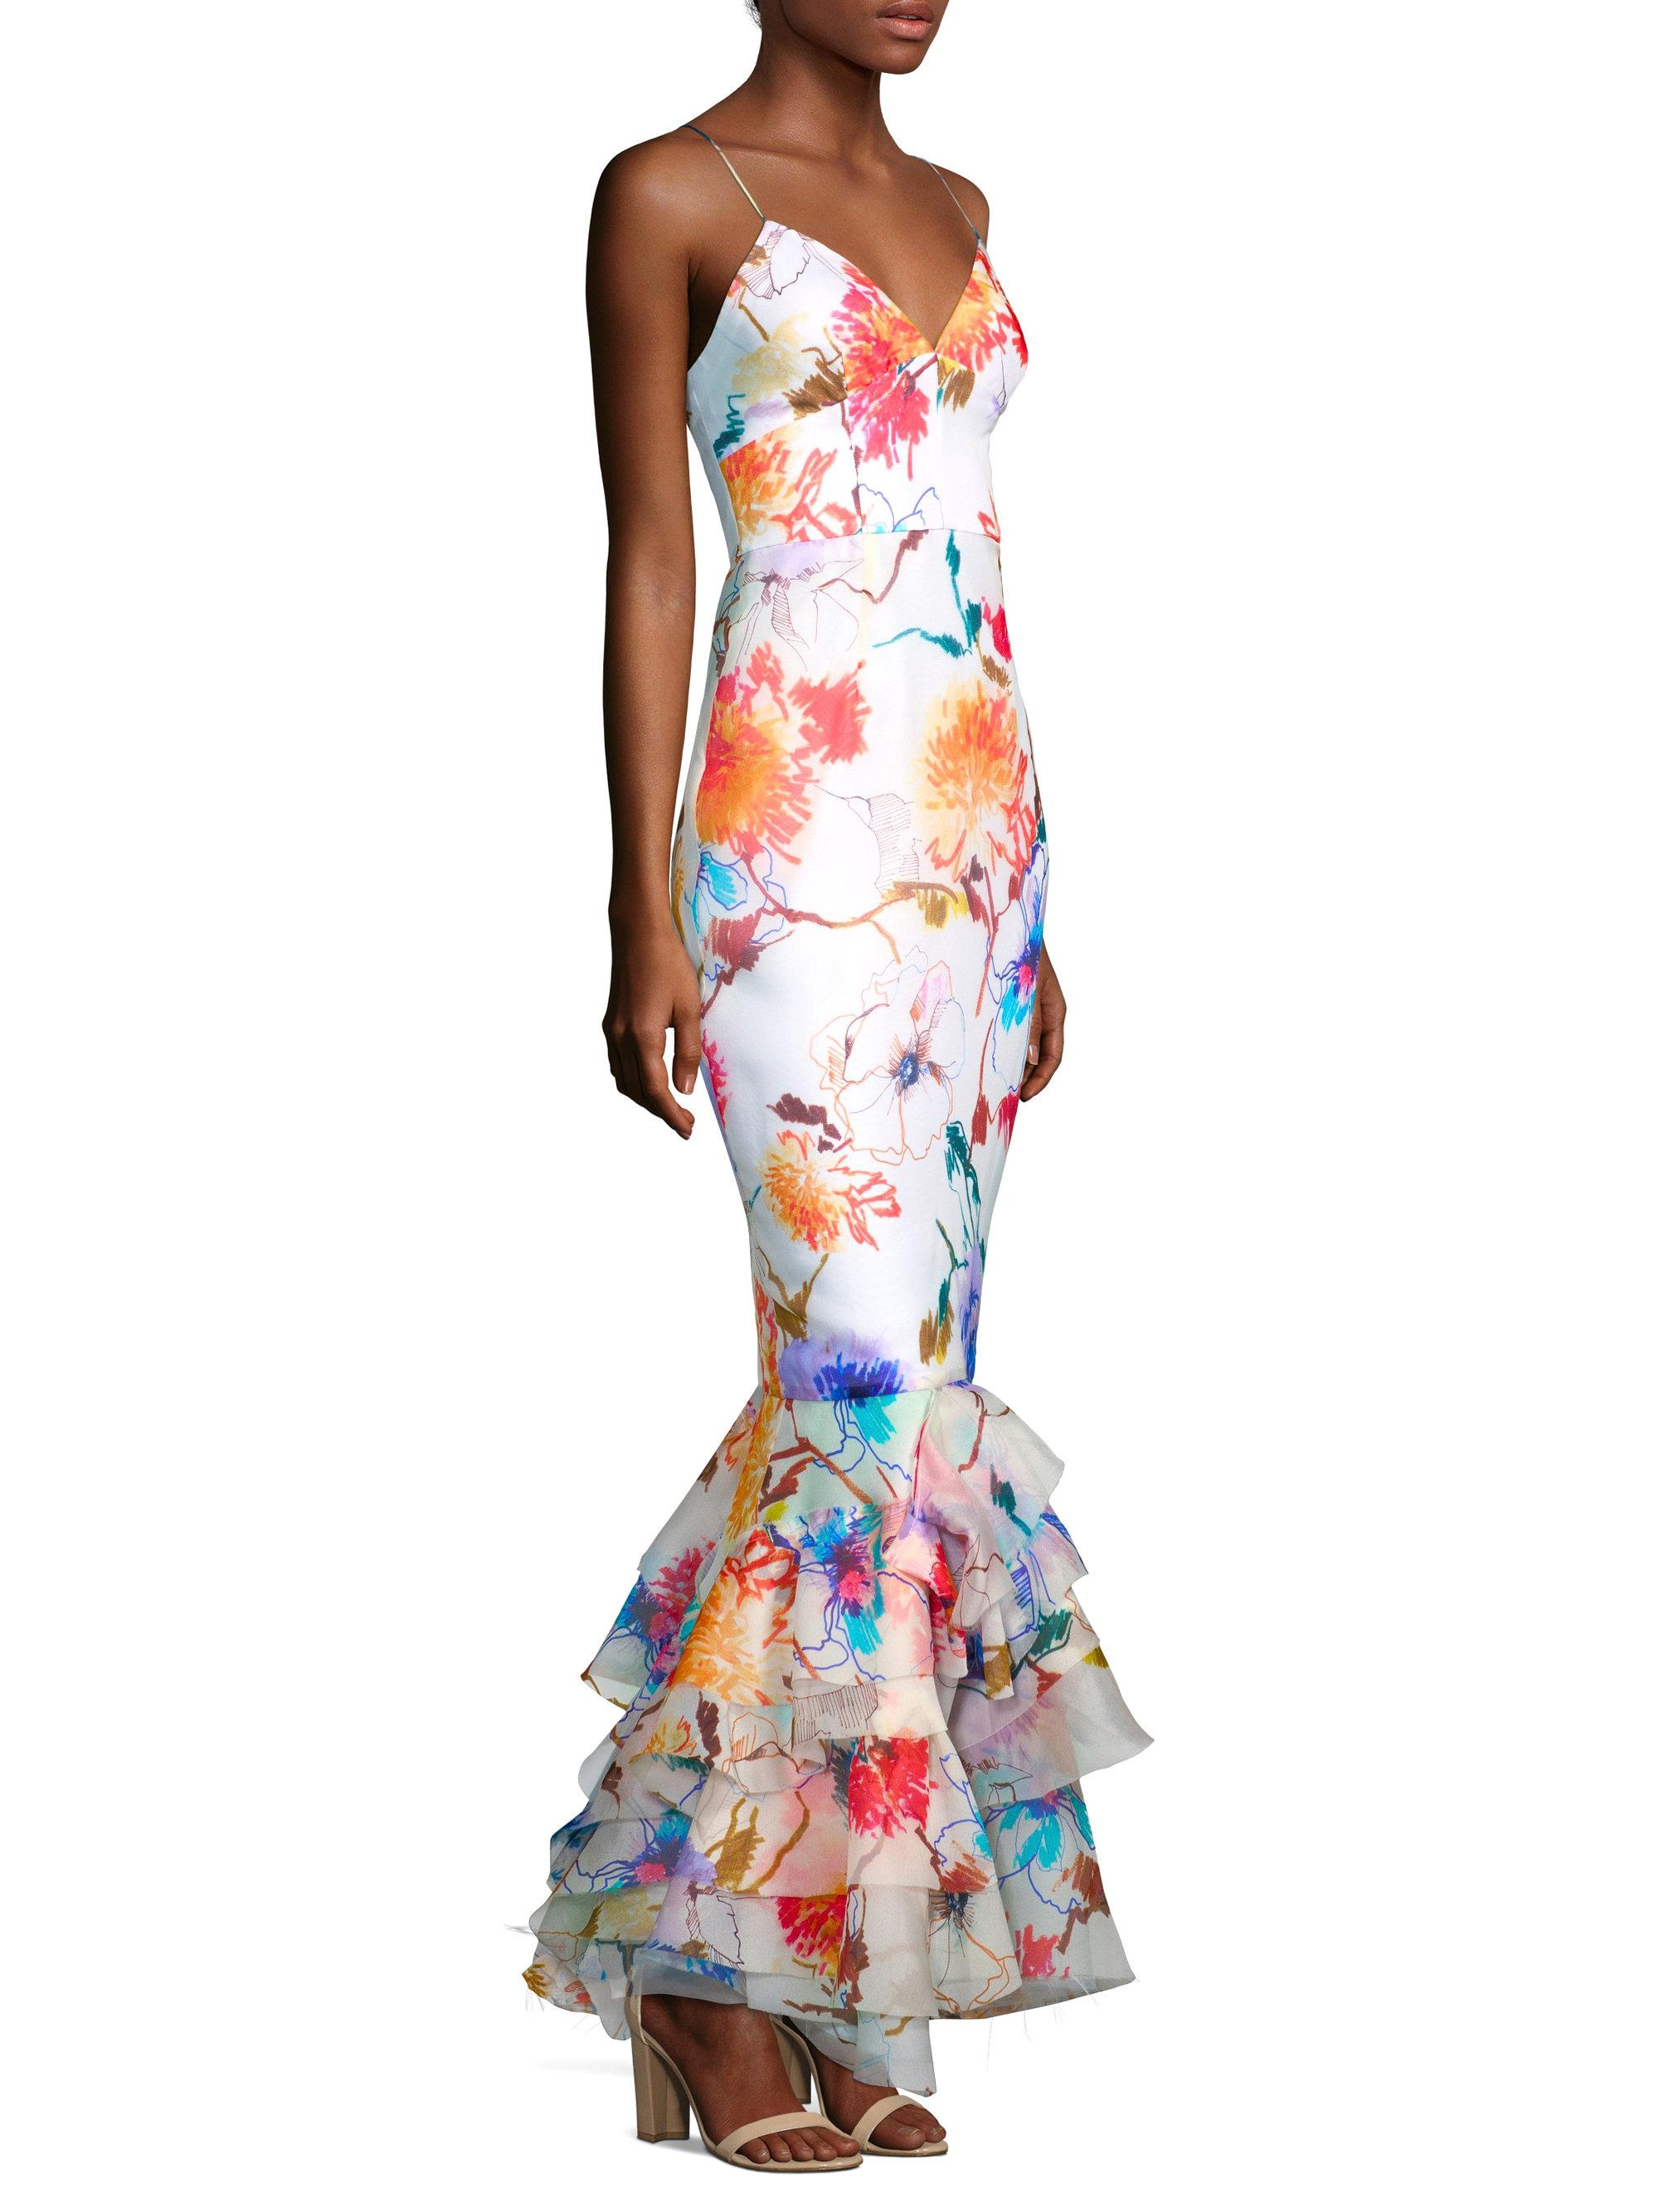 Milly Milan Floral Gown - Lyst